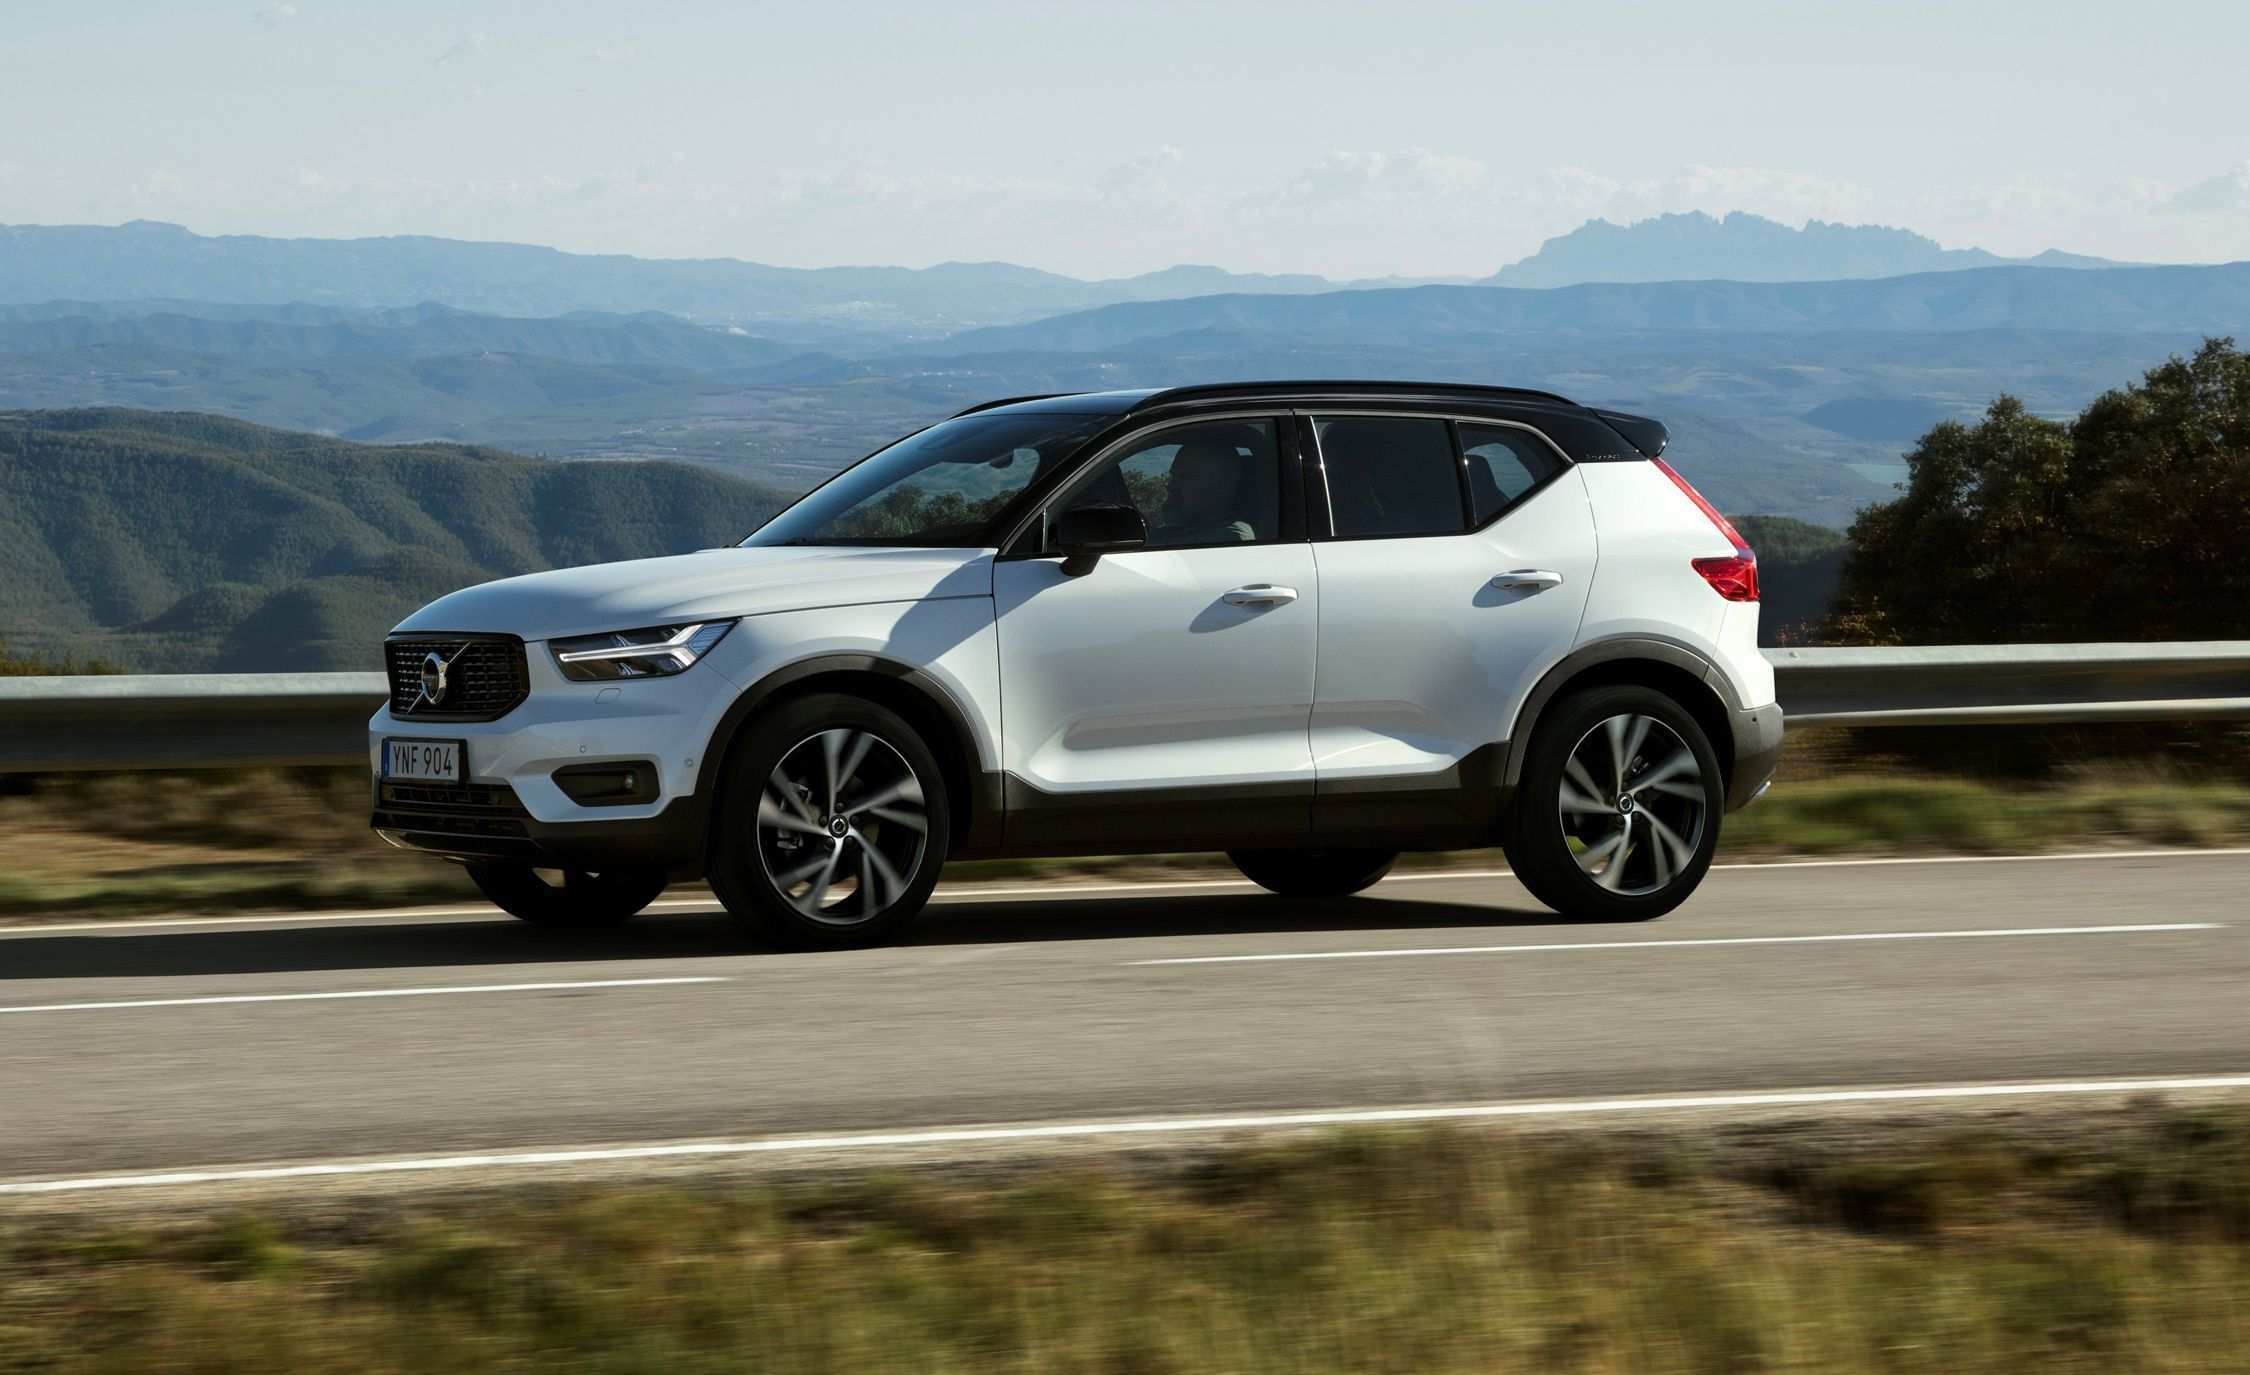 43 The Best Volvo Electric Suv 2019 First Drive Price Performance And Review Release with Best Volvo Electric Suv 2019 First Drive Price Performance And Review